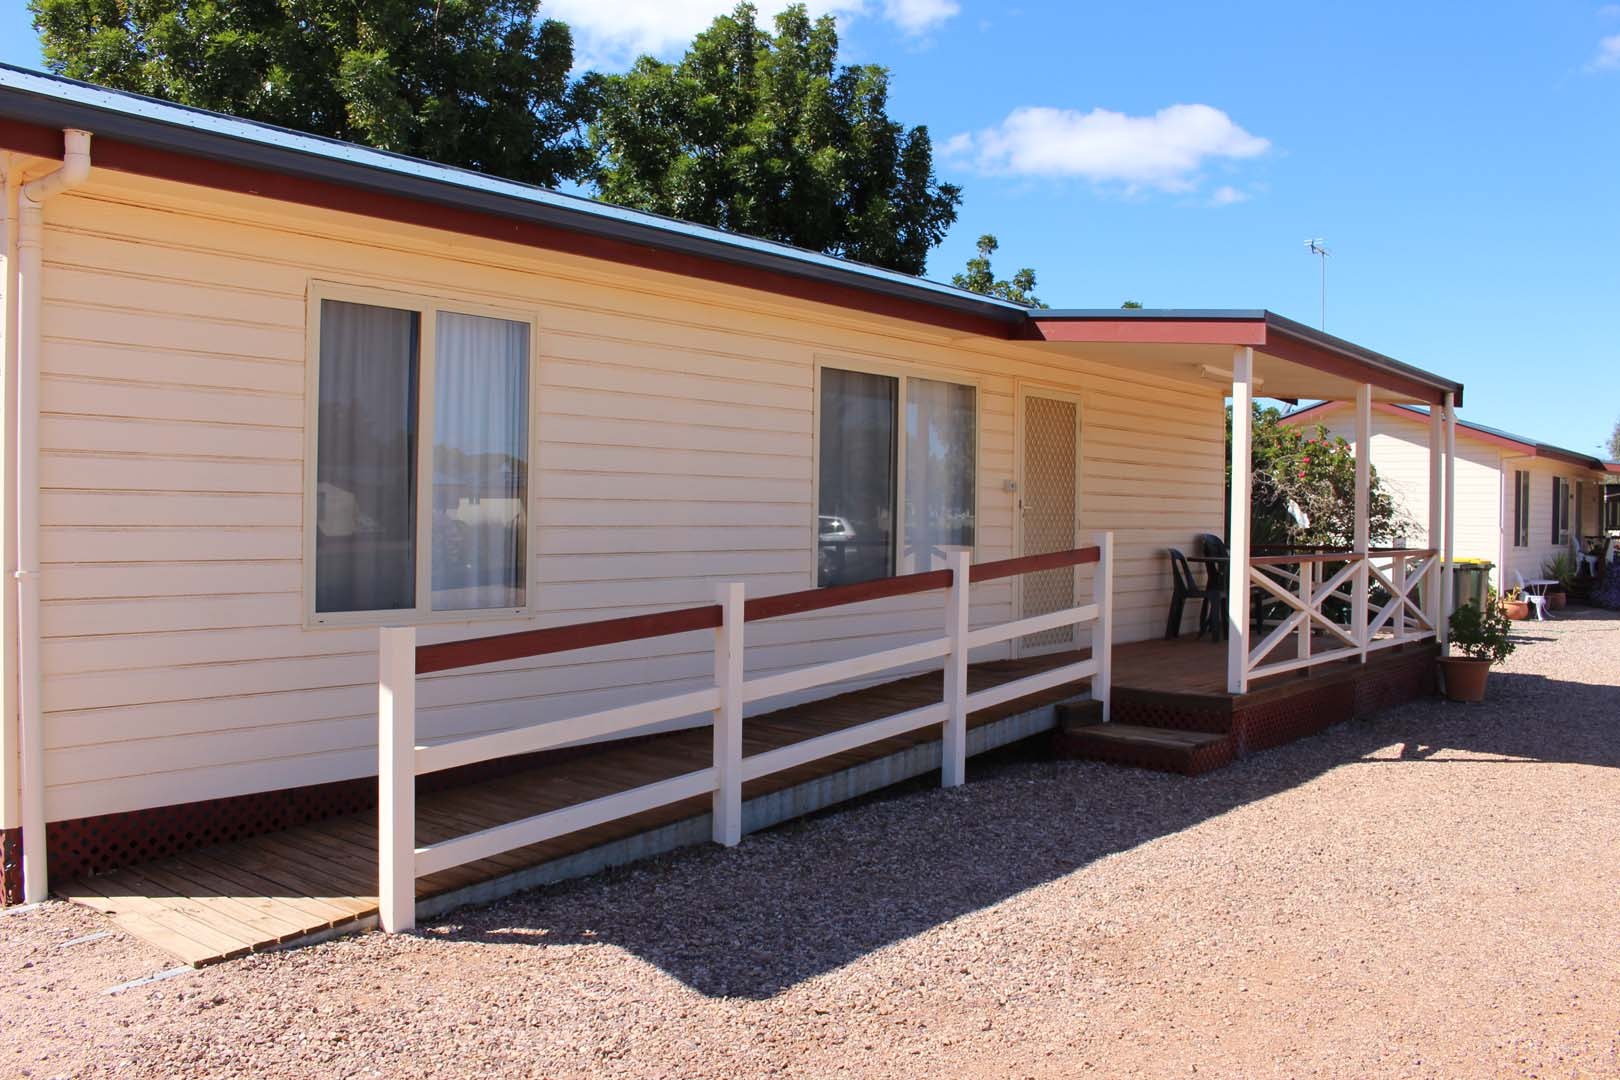 fuller-views-cabin-park-disabled-cabin-wheelchair-access-ramp